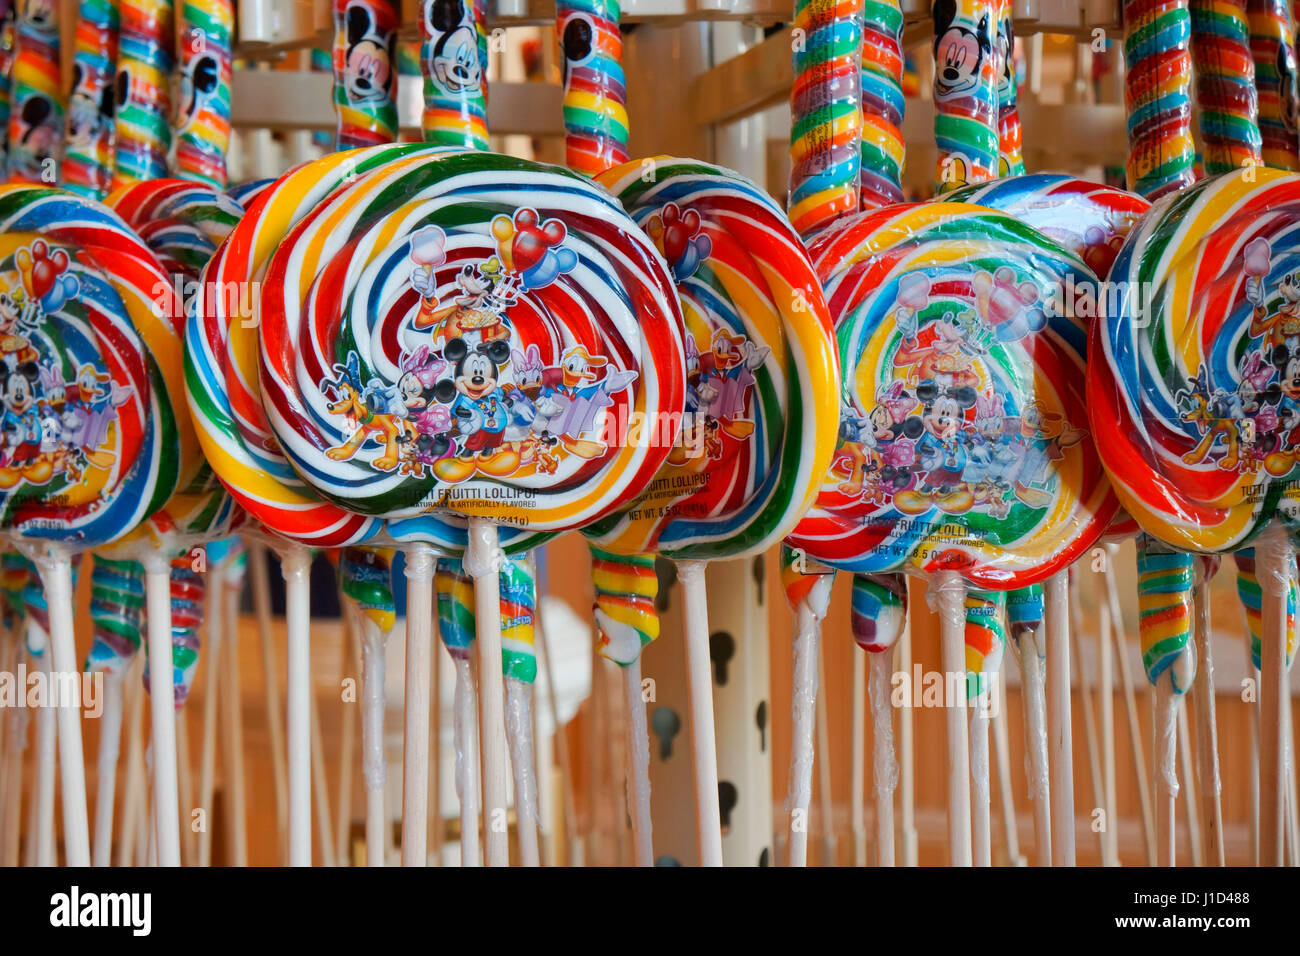 Disney Lollipops, Candy Caramelos dulces en una tienda de Disney, Magic Kingdom, Disney World, Orlando, Florida Imagen De Stock